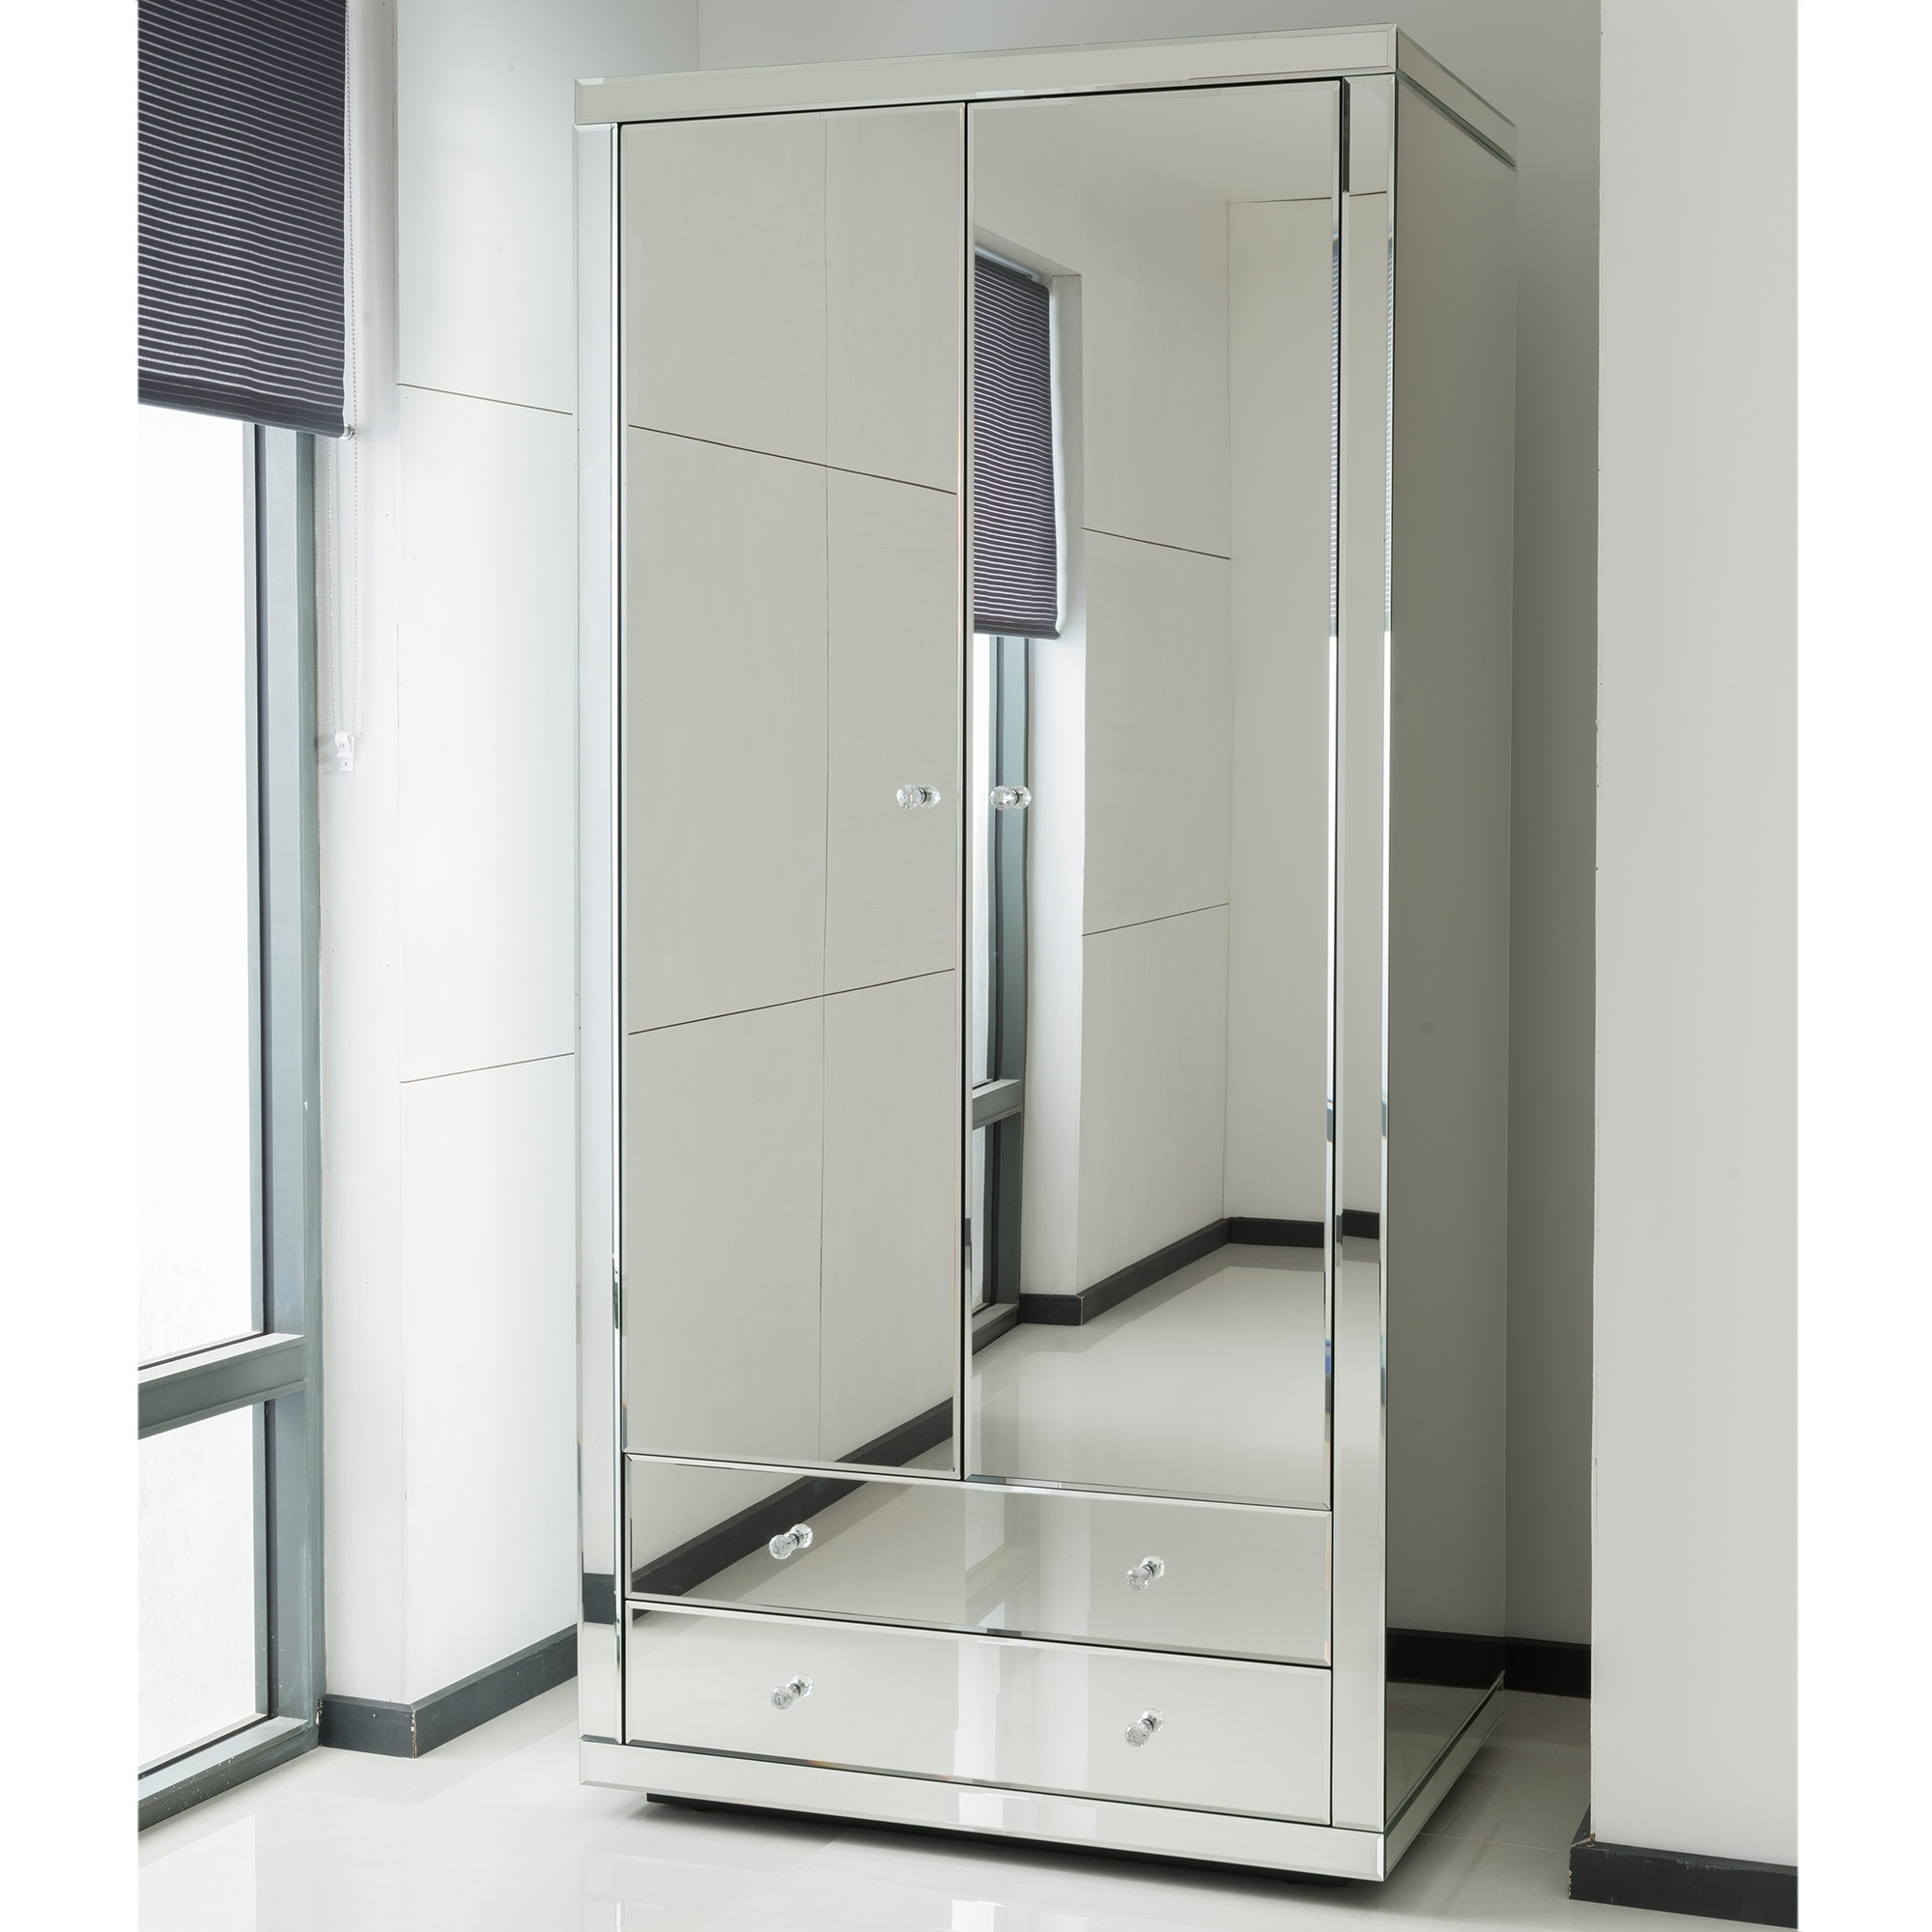 Fashionable 3 Door Mirrored Wardrobe – Mirrored Wardrobe Designs For Your Pertaining To Three Door Mirrored Wardrobes (View 2 of 15)